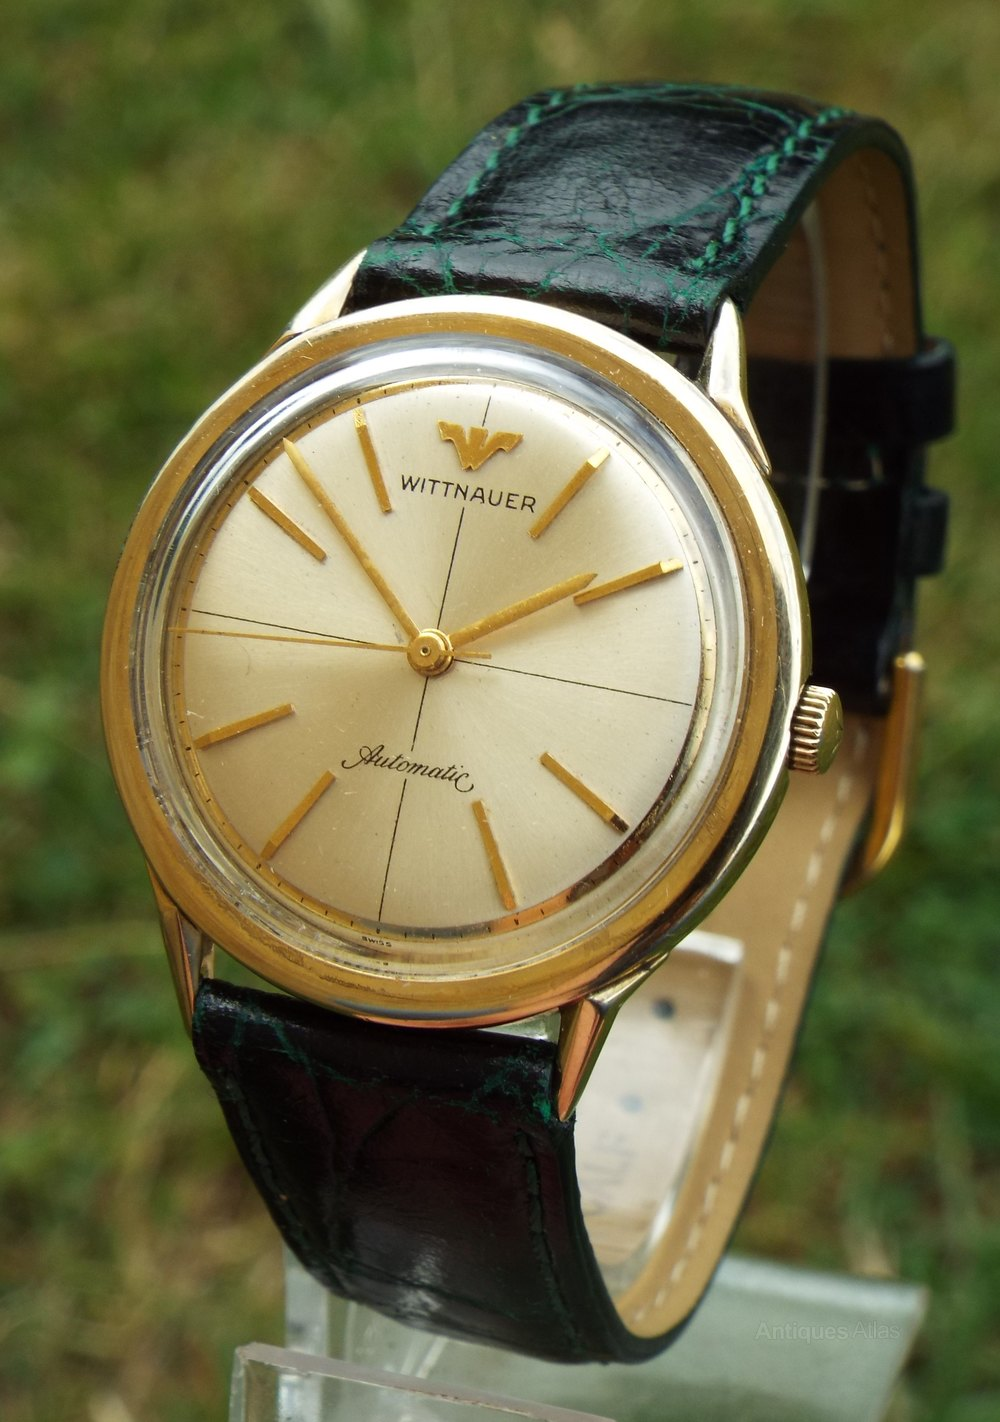 Gents 1960s Wittnauer Automatic Wrist Watch